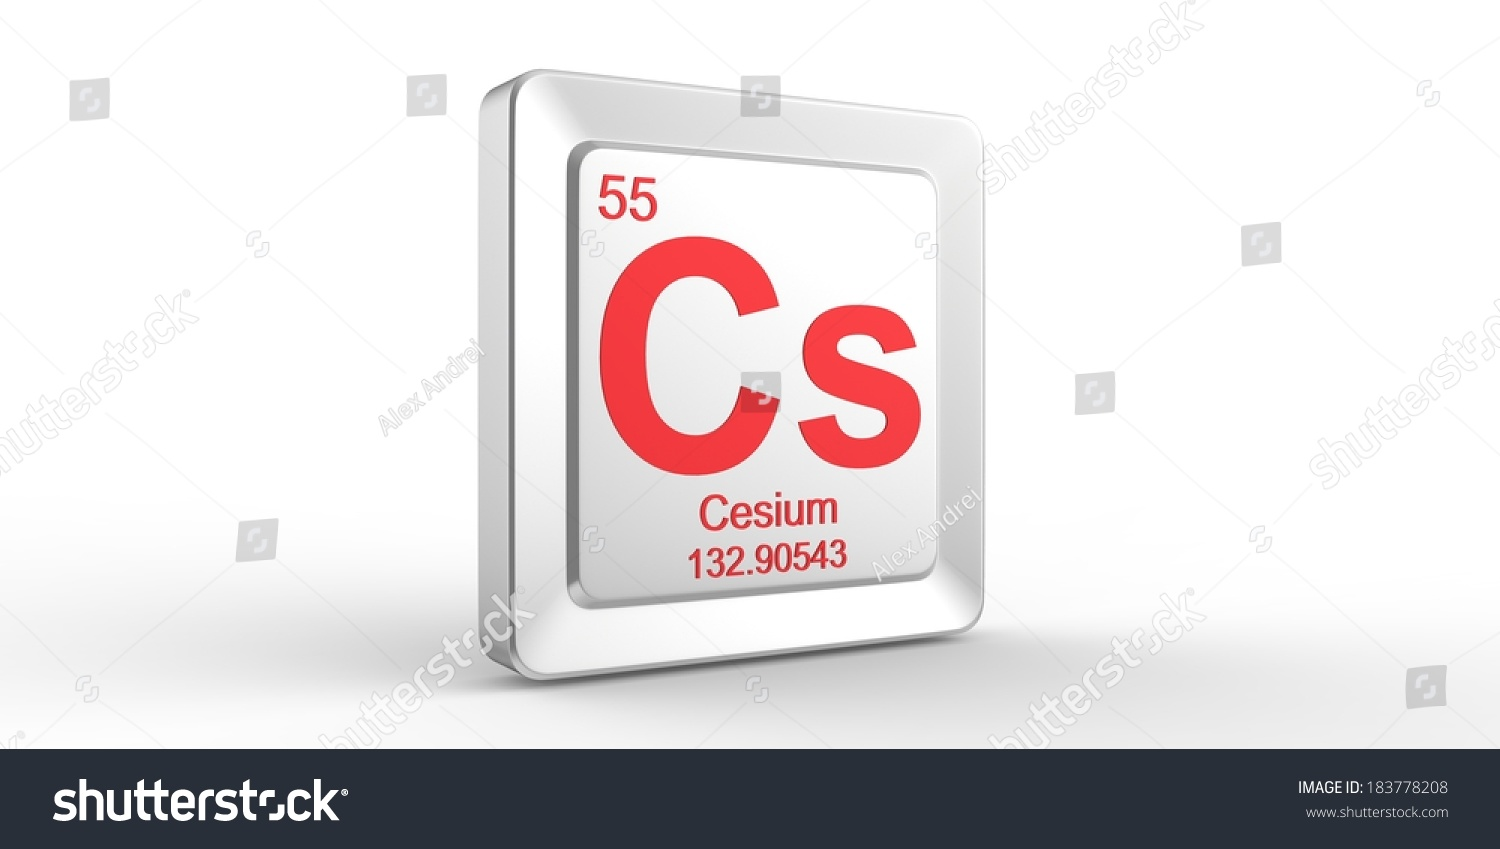 Cs symbol 55 material cesium chemical stock illustration 183778208 cs symbol 55 material for cesium chemical element of the periodic table gamestrikefo Image collections